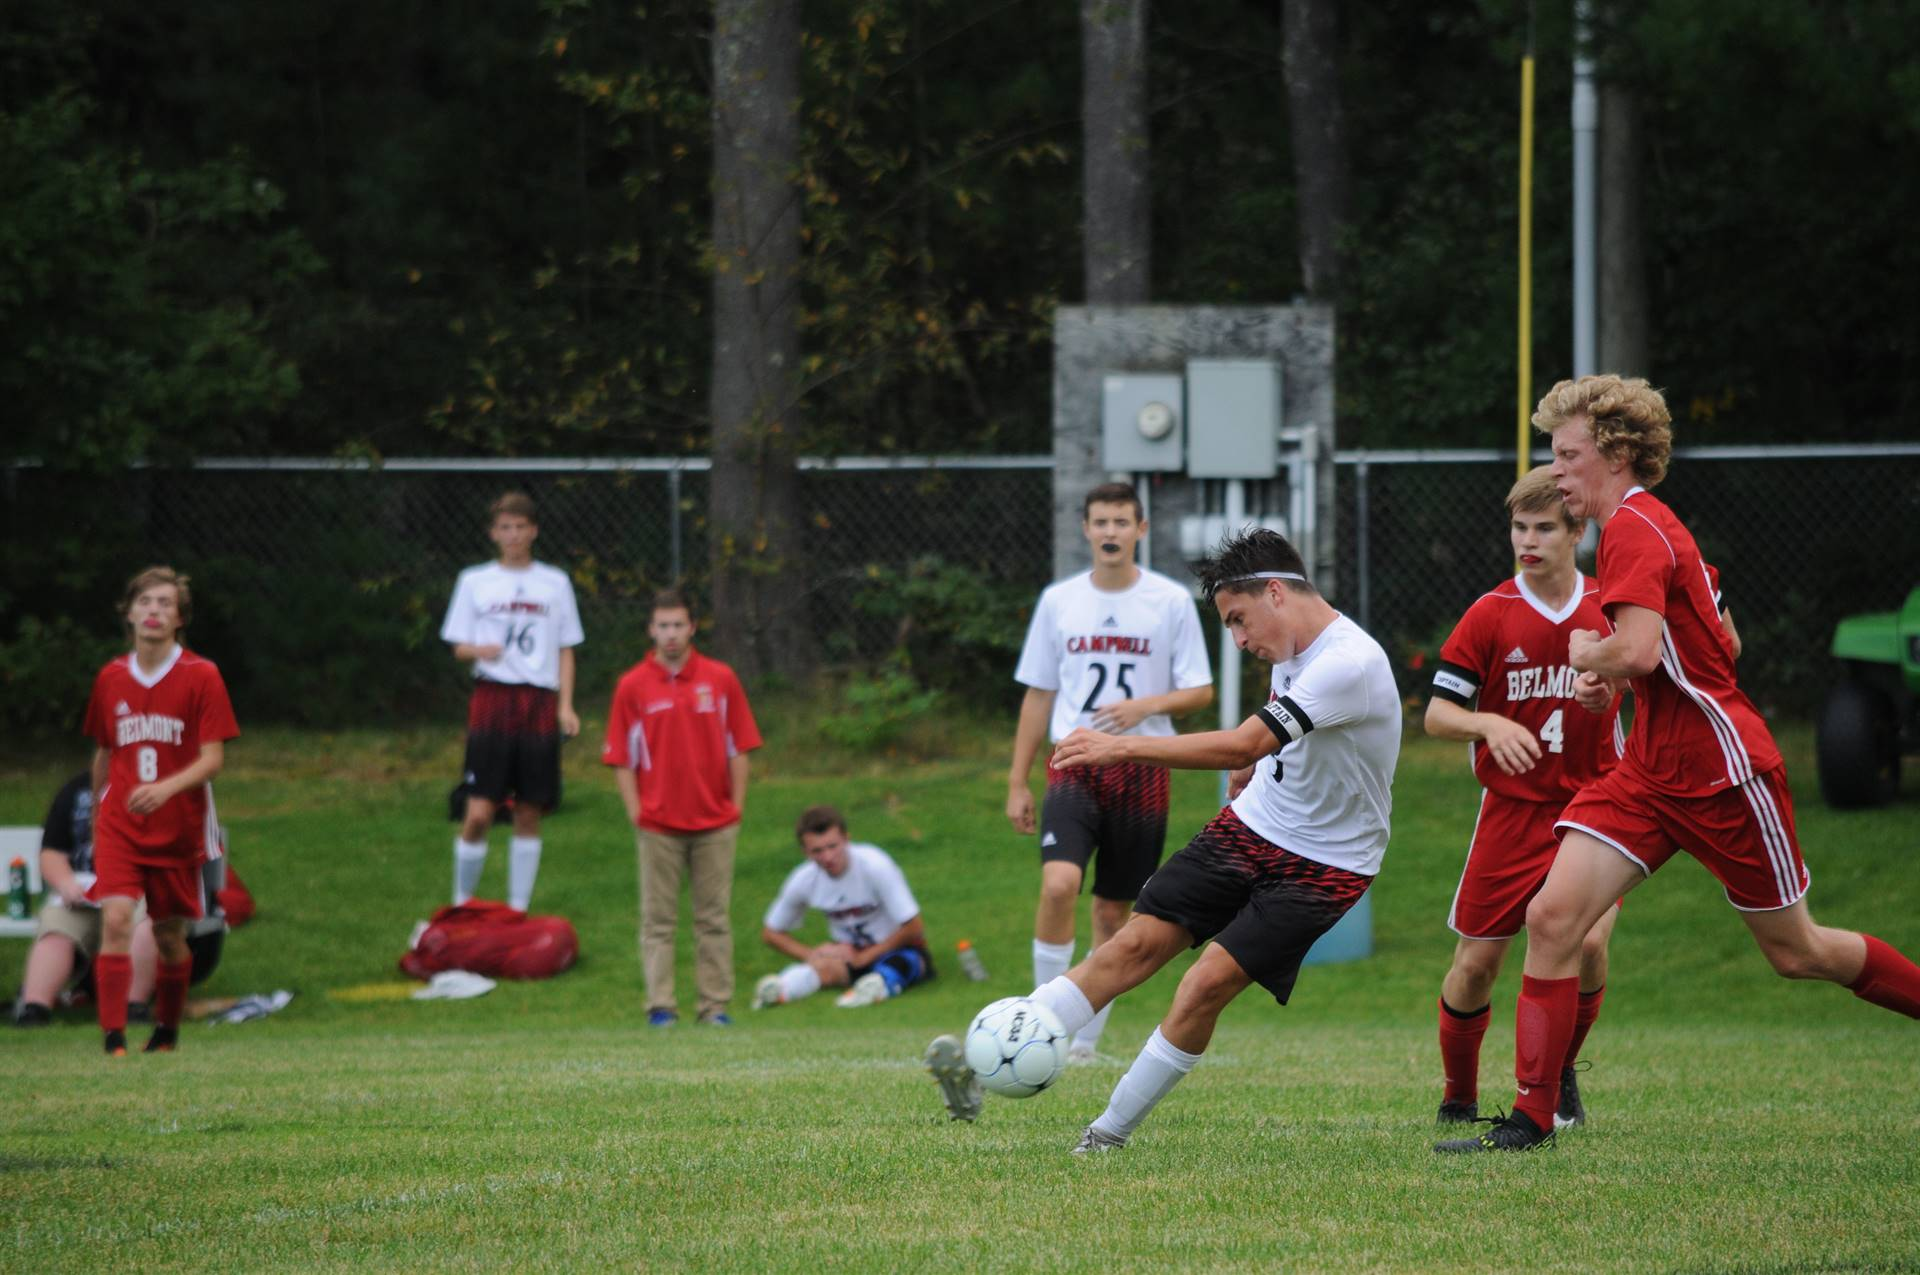 J. Scafidi clearing the ball